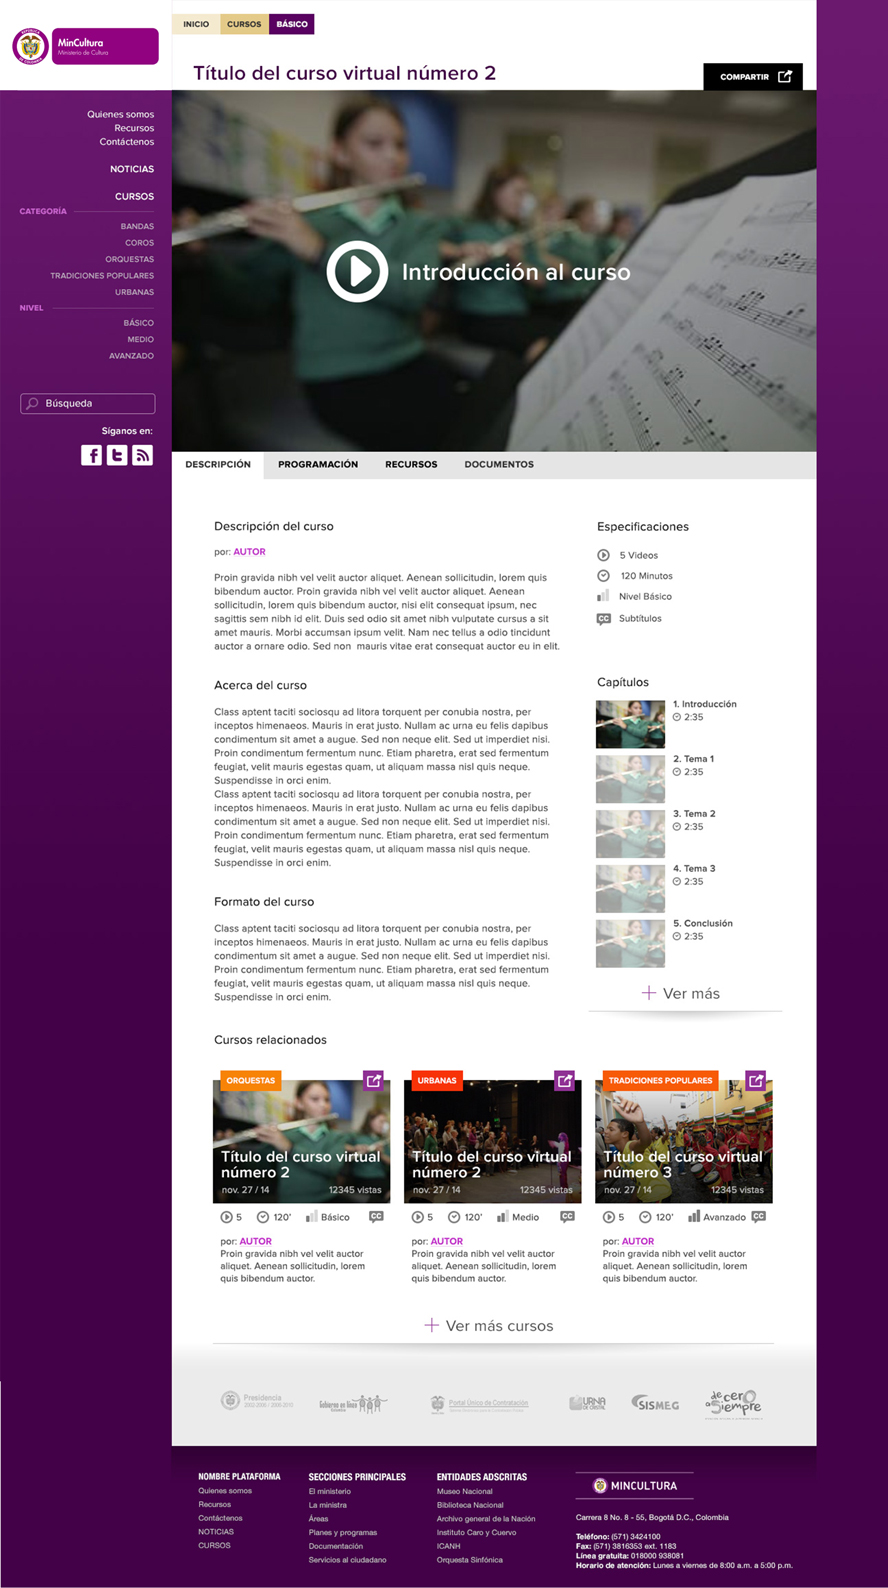 E-learnig portal proposal for the colombian ministry of culture